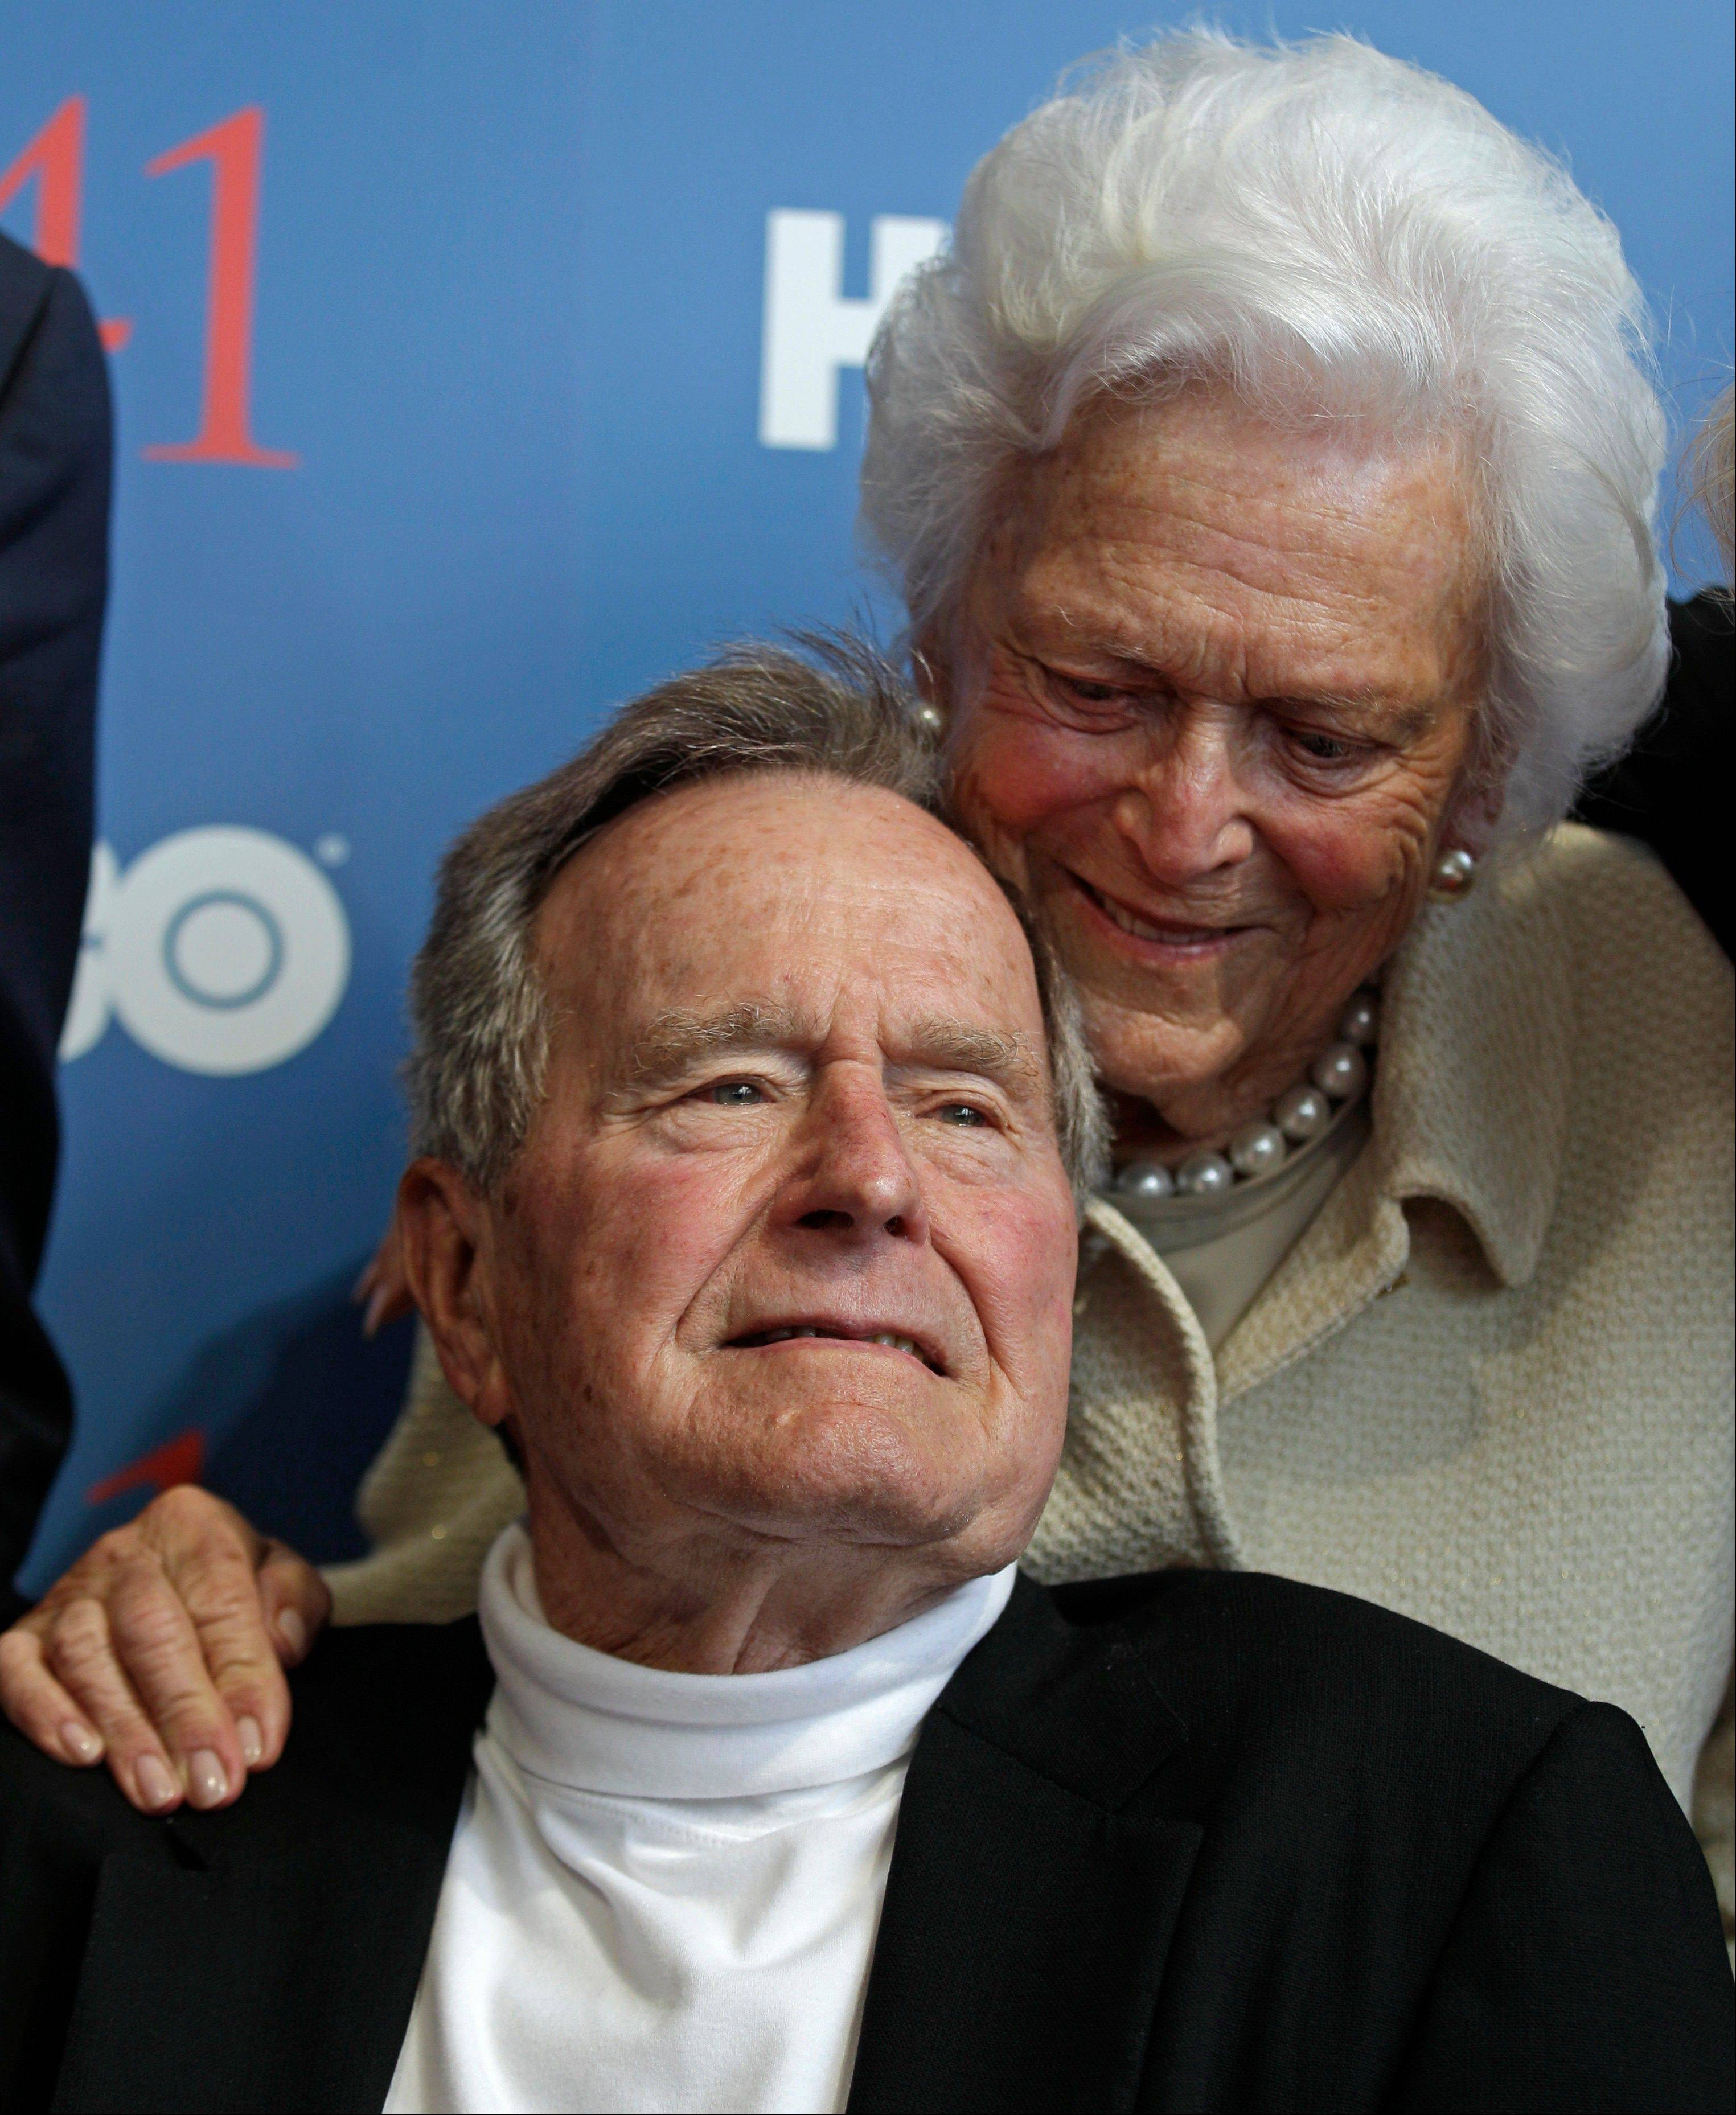 In this June 2012 photo, President George H.W. Bush, and his wife, Barbara, arrive for the premiere of HBO�s documentary about his life in Kennebunkport, Maine. A criminal investigation is under way after a hacker apparently accessed private photos and emails sent between members of the Bush family, including both former presidents.